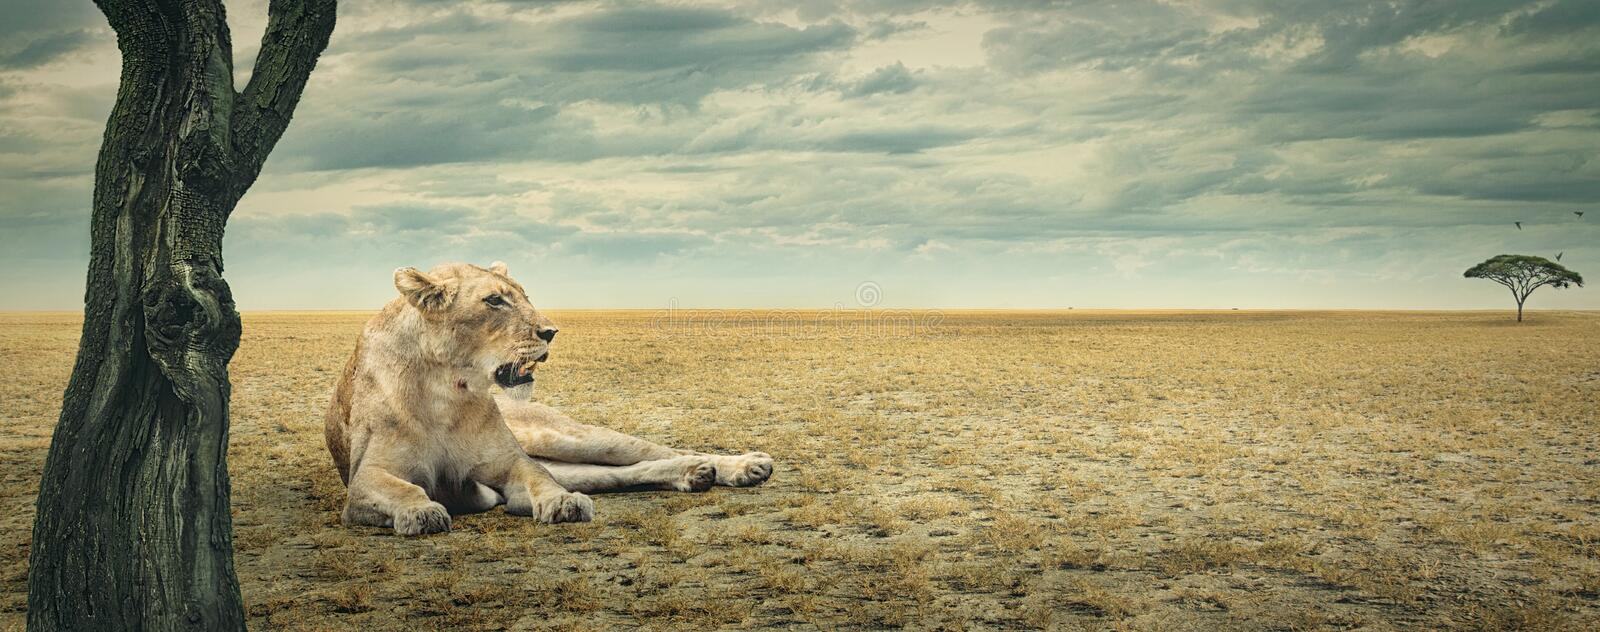 Lioness resting royalty free stock photo